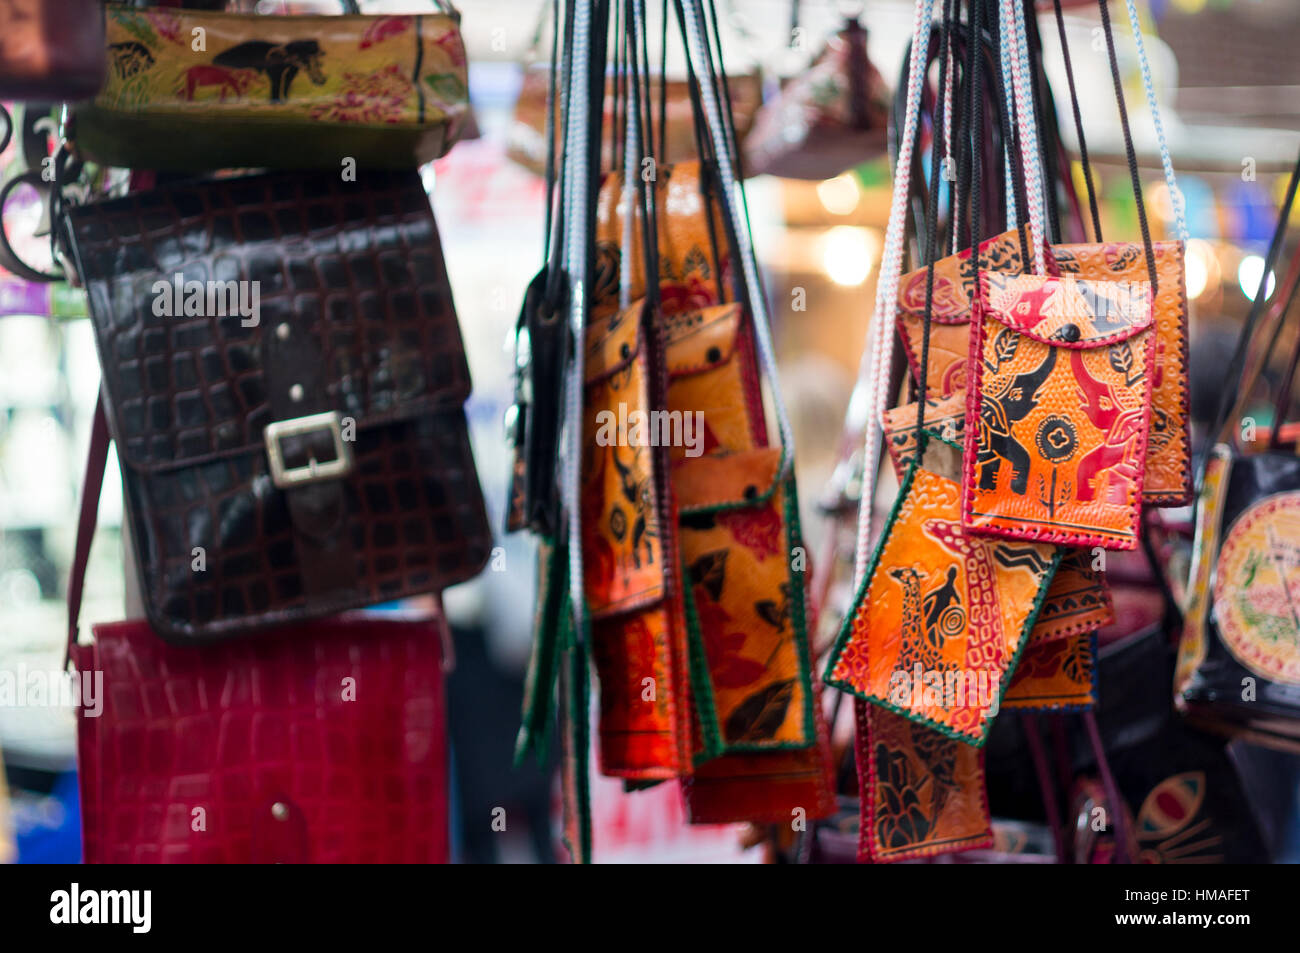 Handicraft leather bags for sale - Stock Image